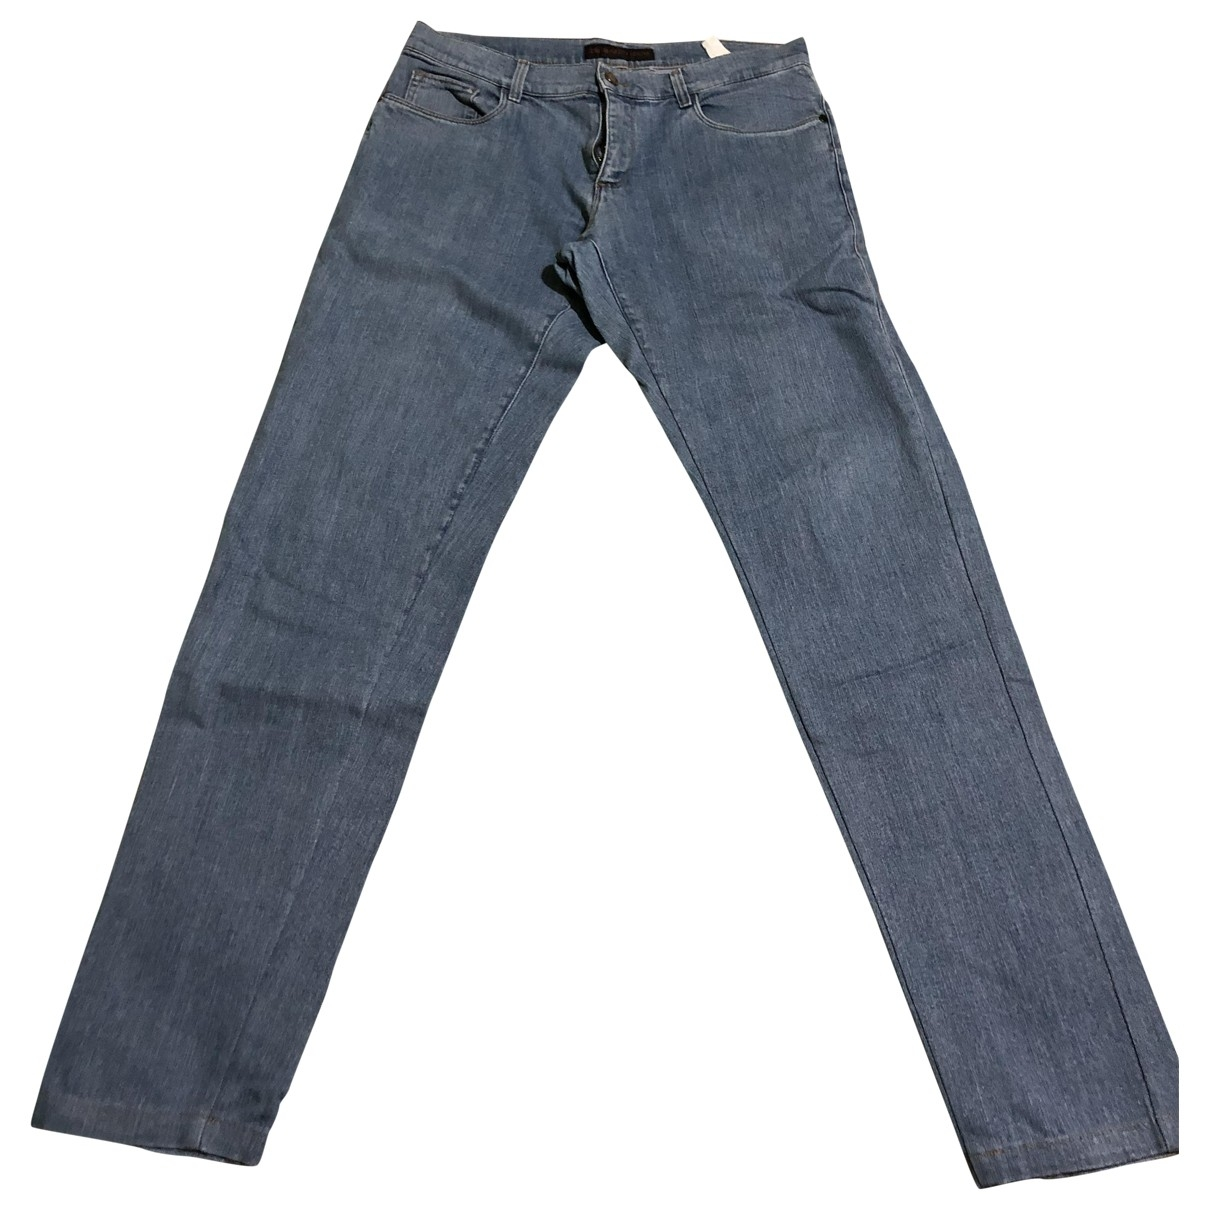 Trussardi Jeans \N Cotton - elasthane Jeans for Men 31 US